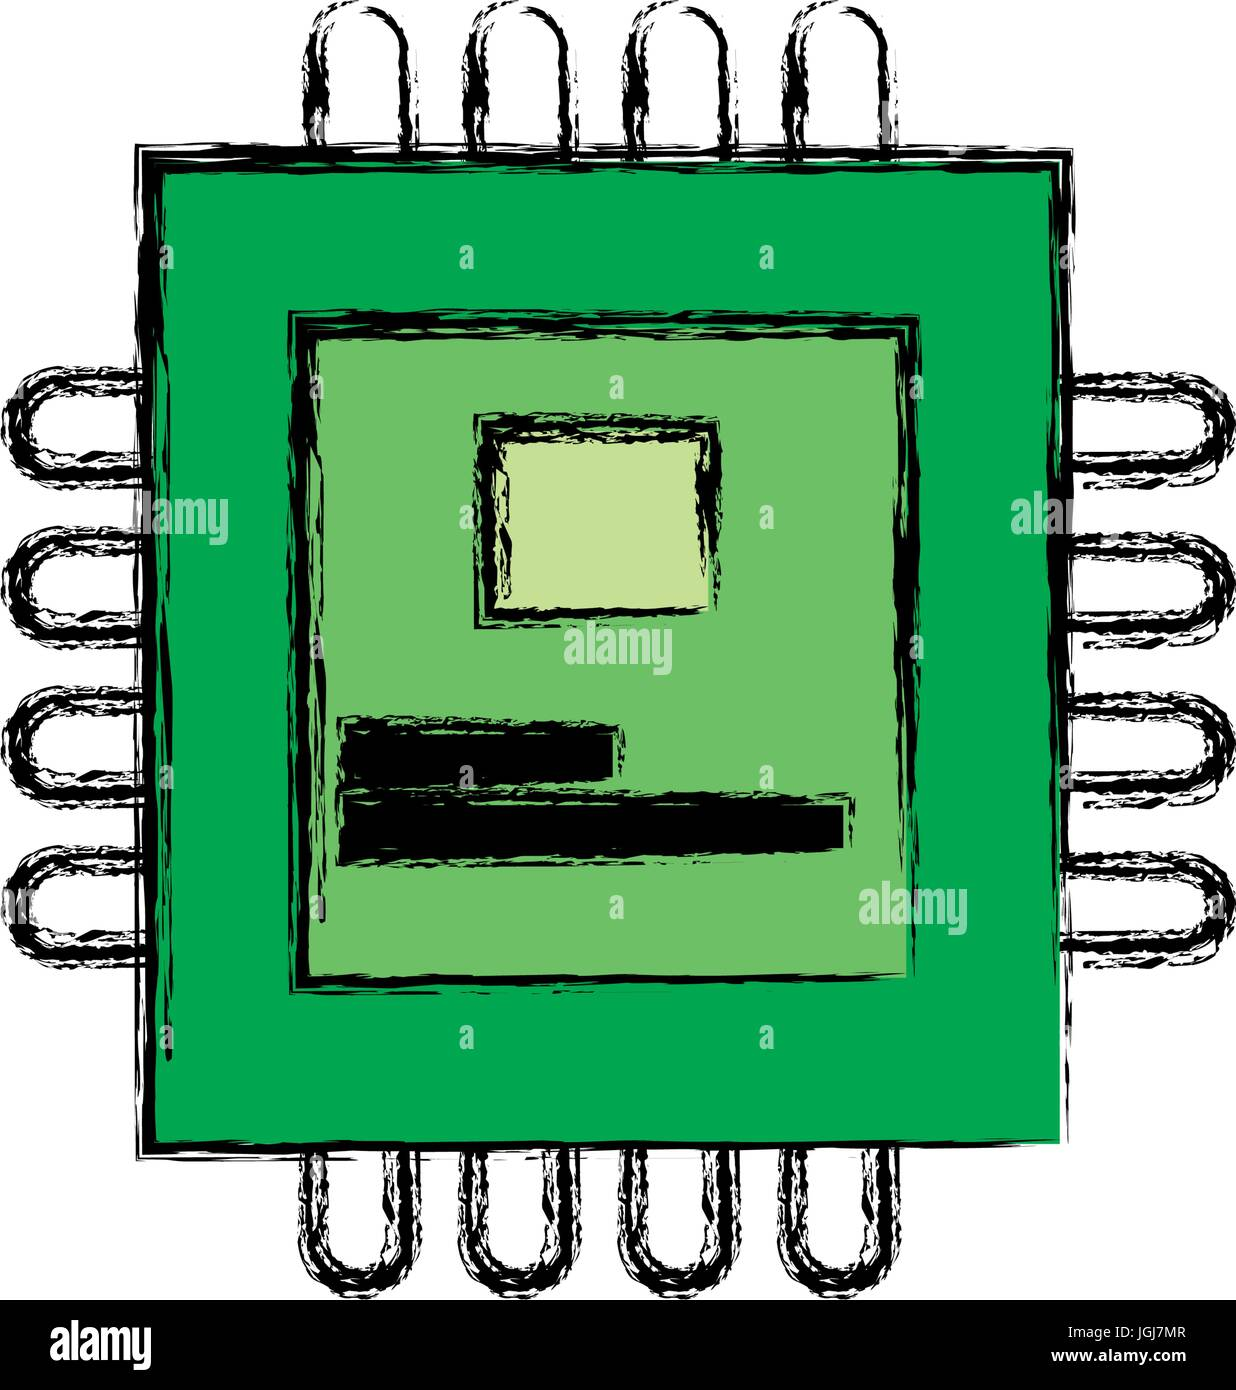 circuit board processor and chip engineering and tech motherboard - Stock Vector